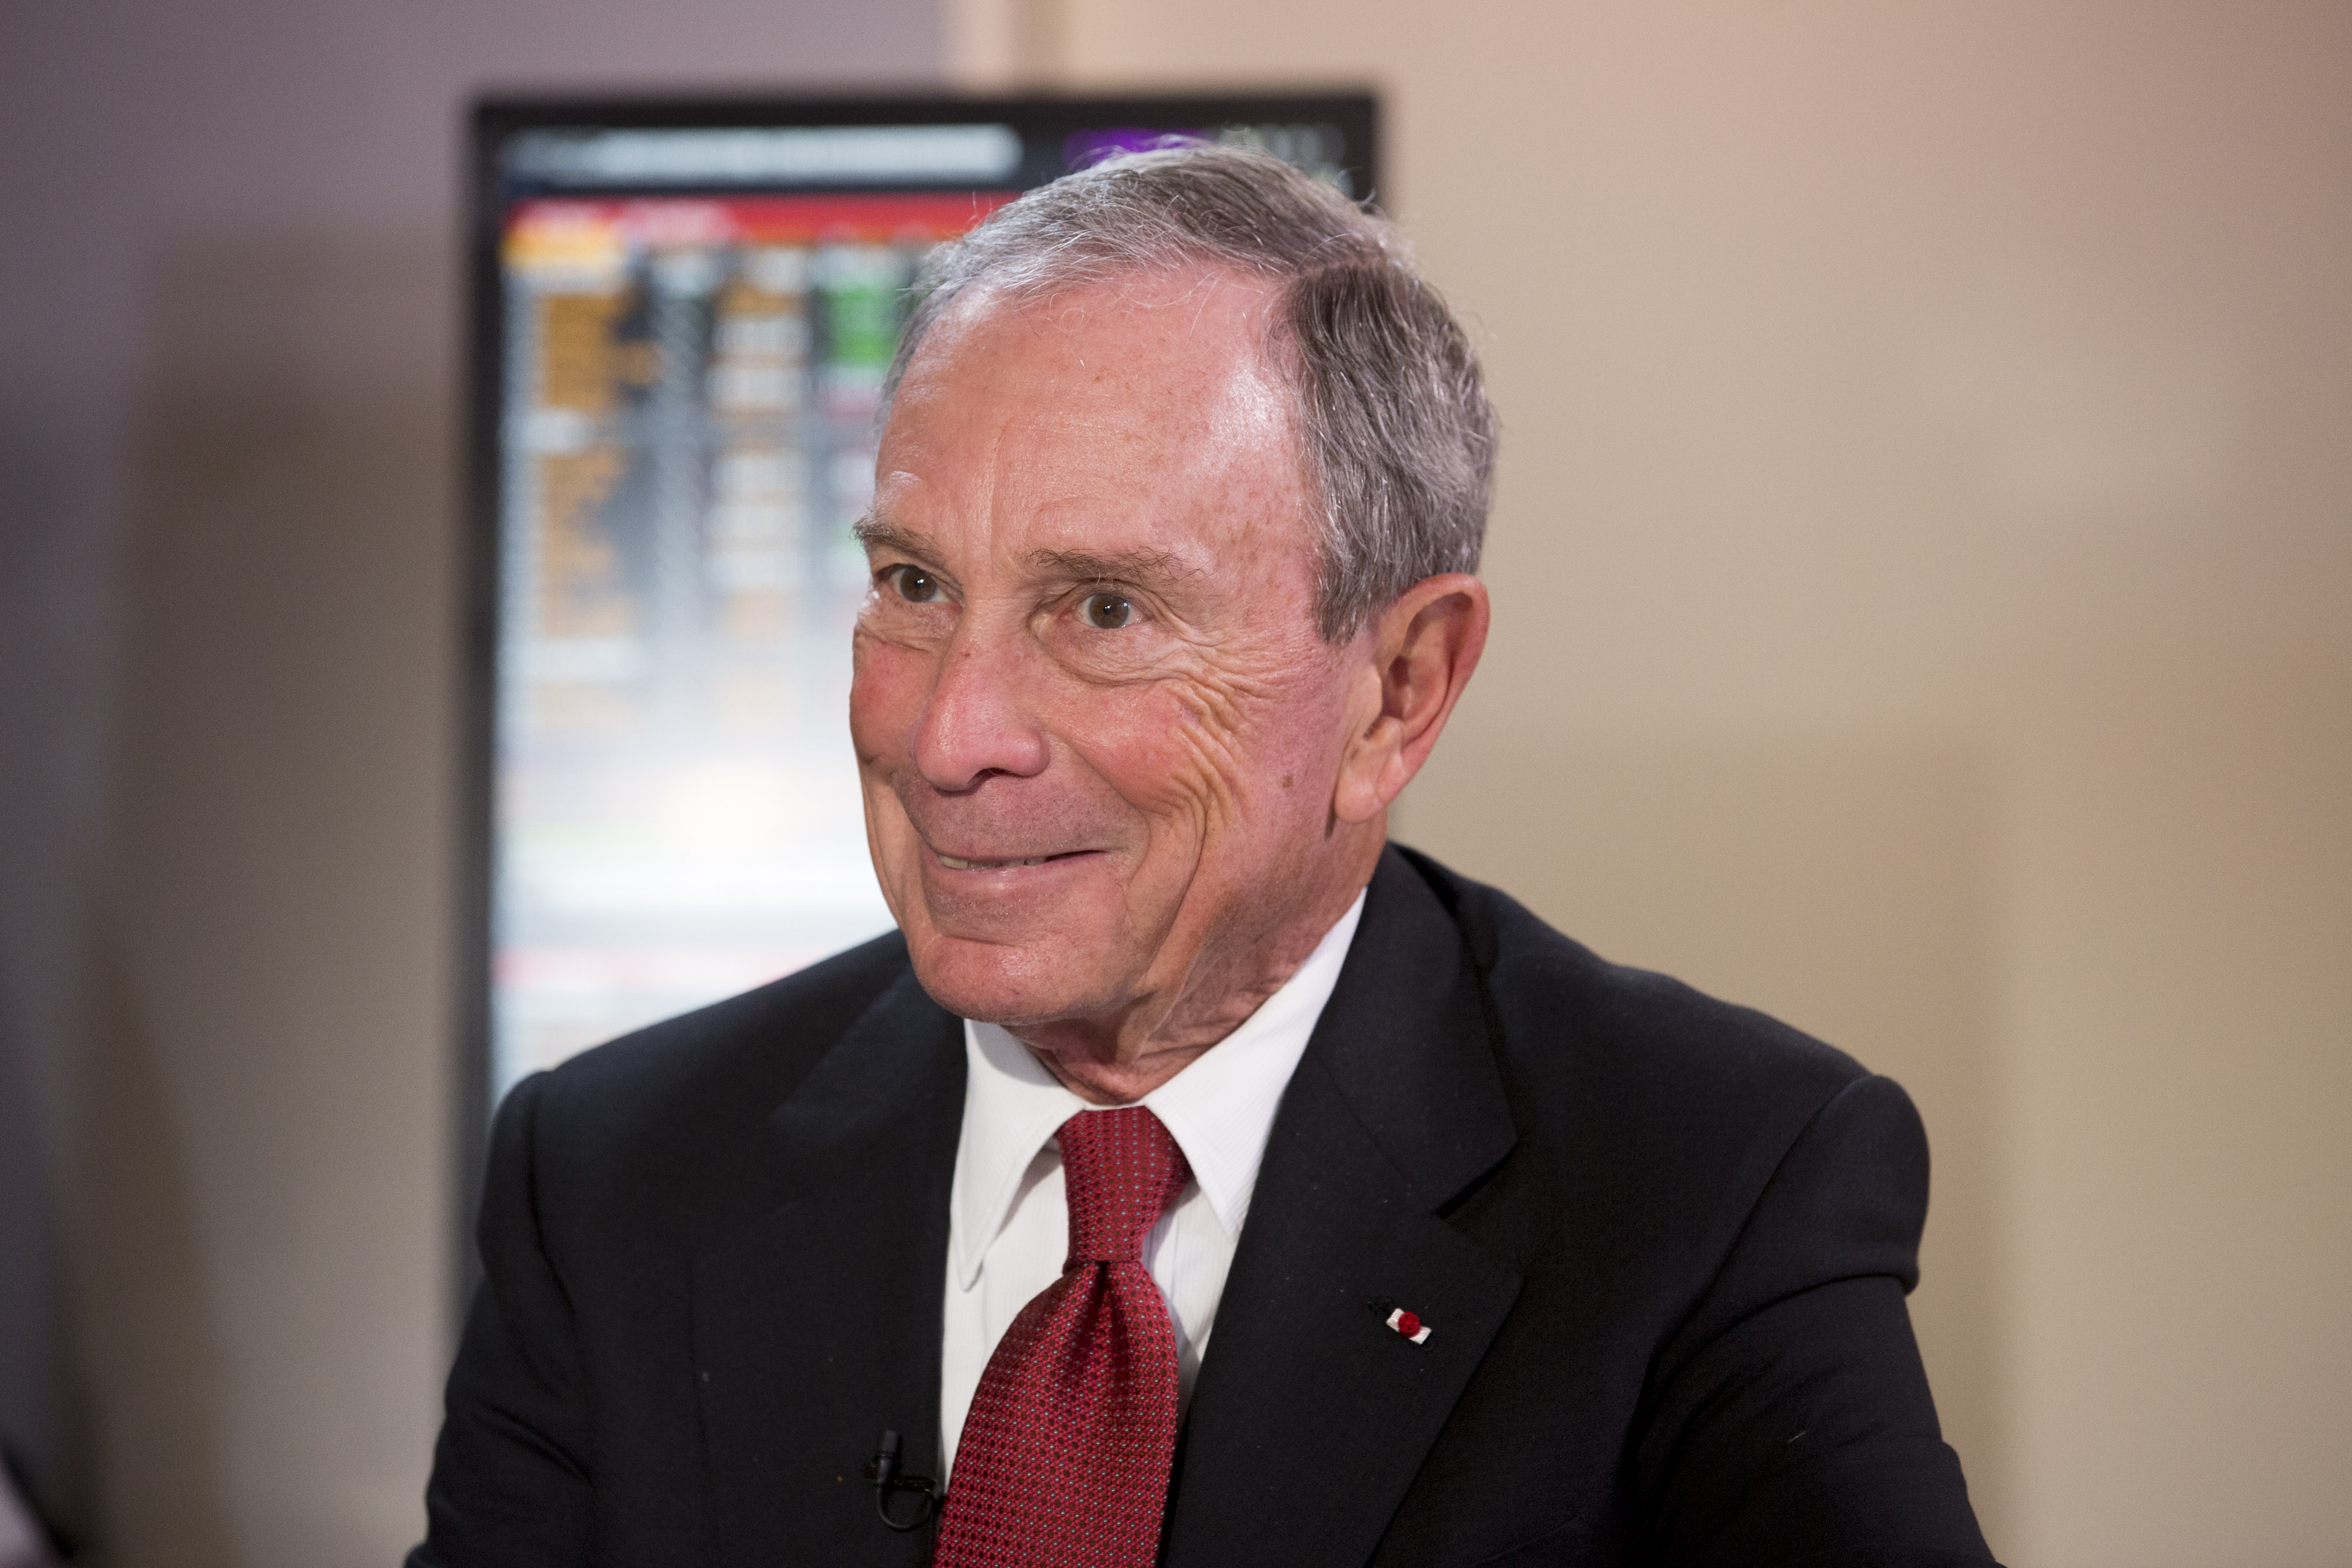 Michael Bloomberg at a news conference at the COP21 climate summit in Paris, on Dec. 4, 2015.